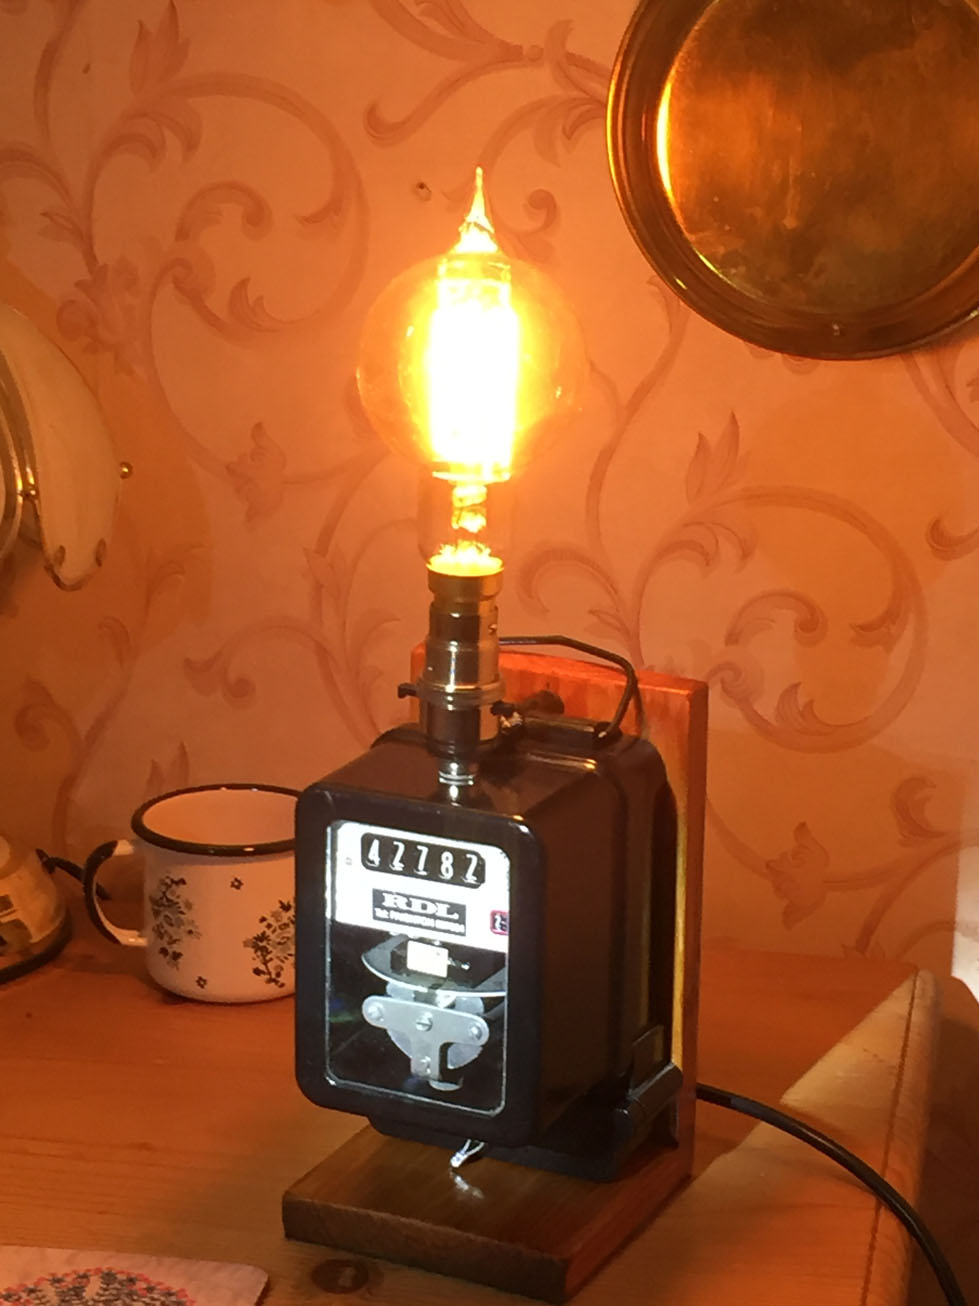 Steampunk electricity meter lamp